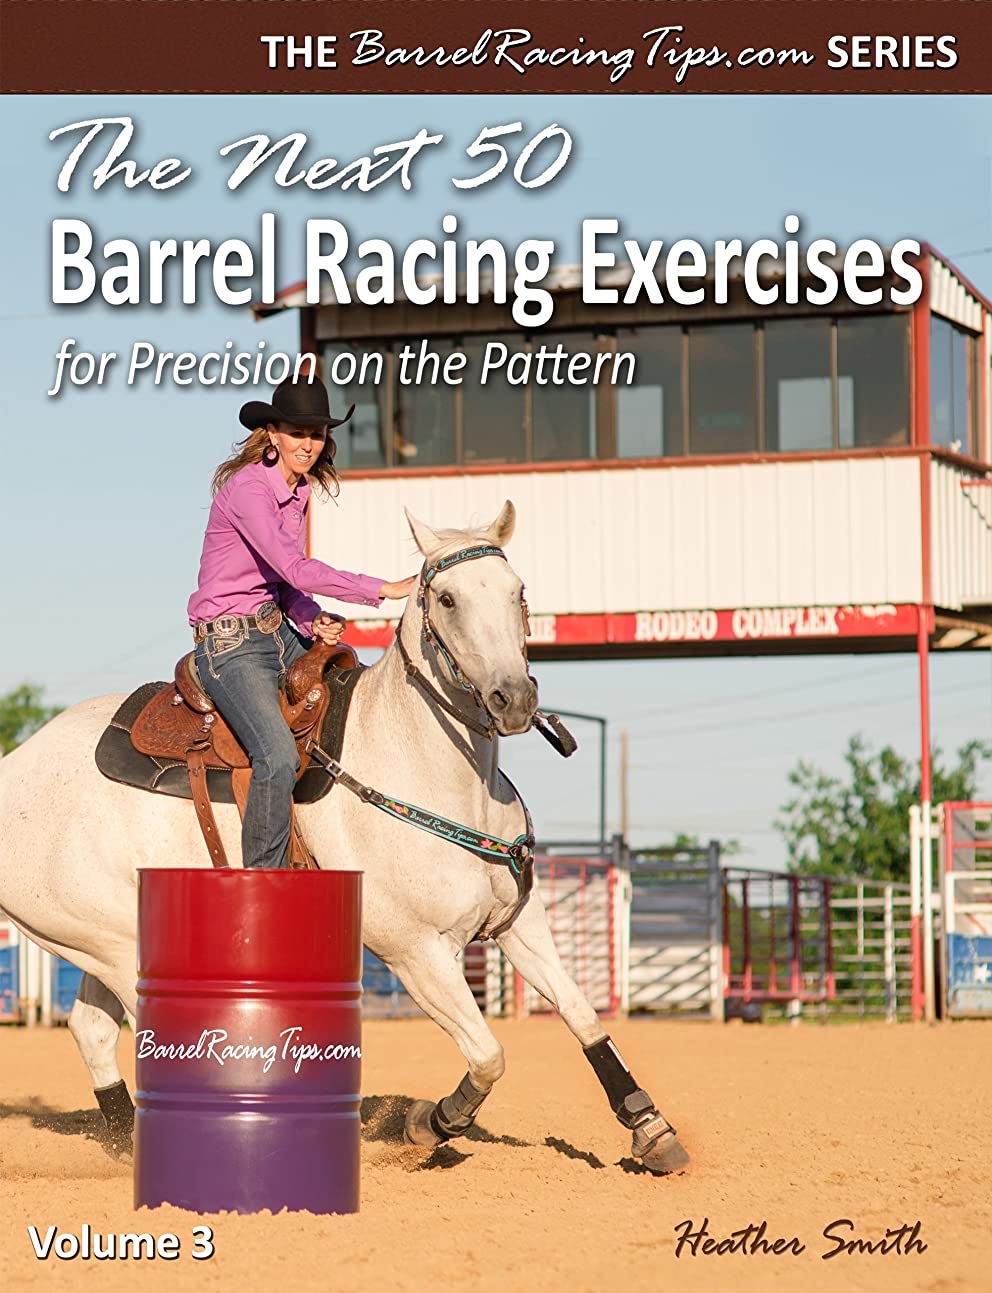 会話誕生パトロールThe Next 50 Barrel Racing Exercises for Precision on the Pattern (BarrelRacingTips.com Book 3) (English Edition)